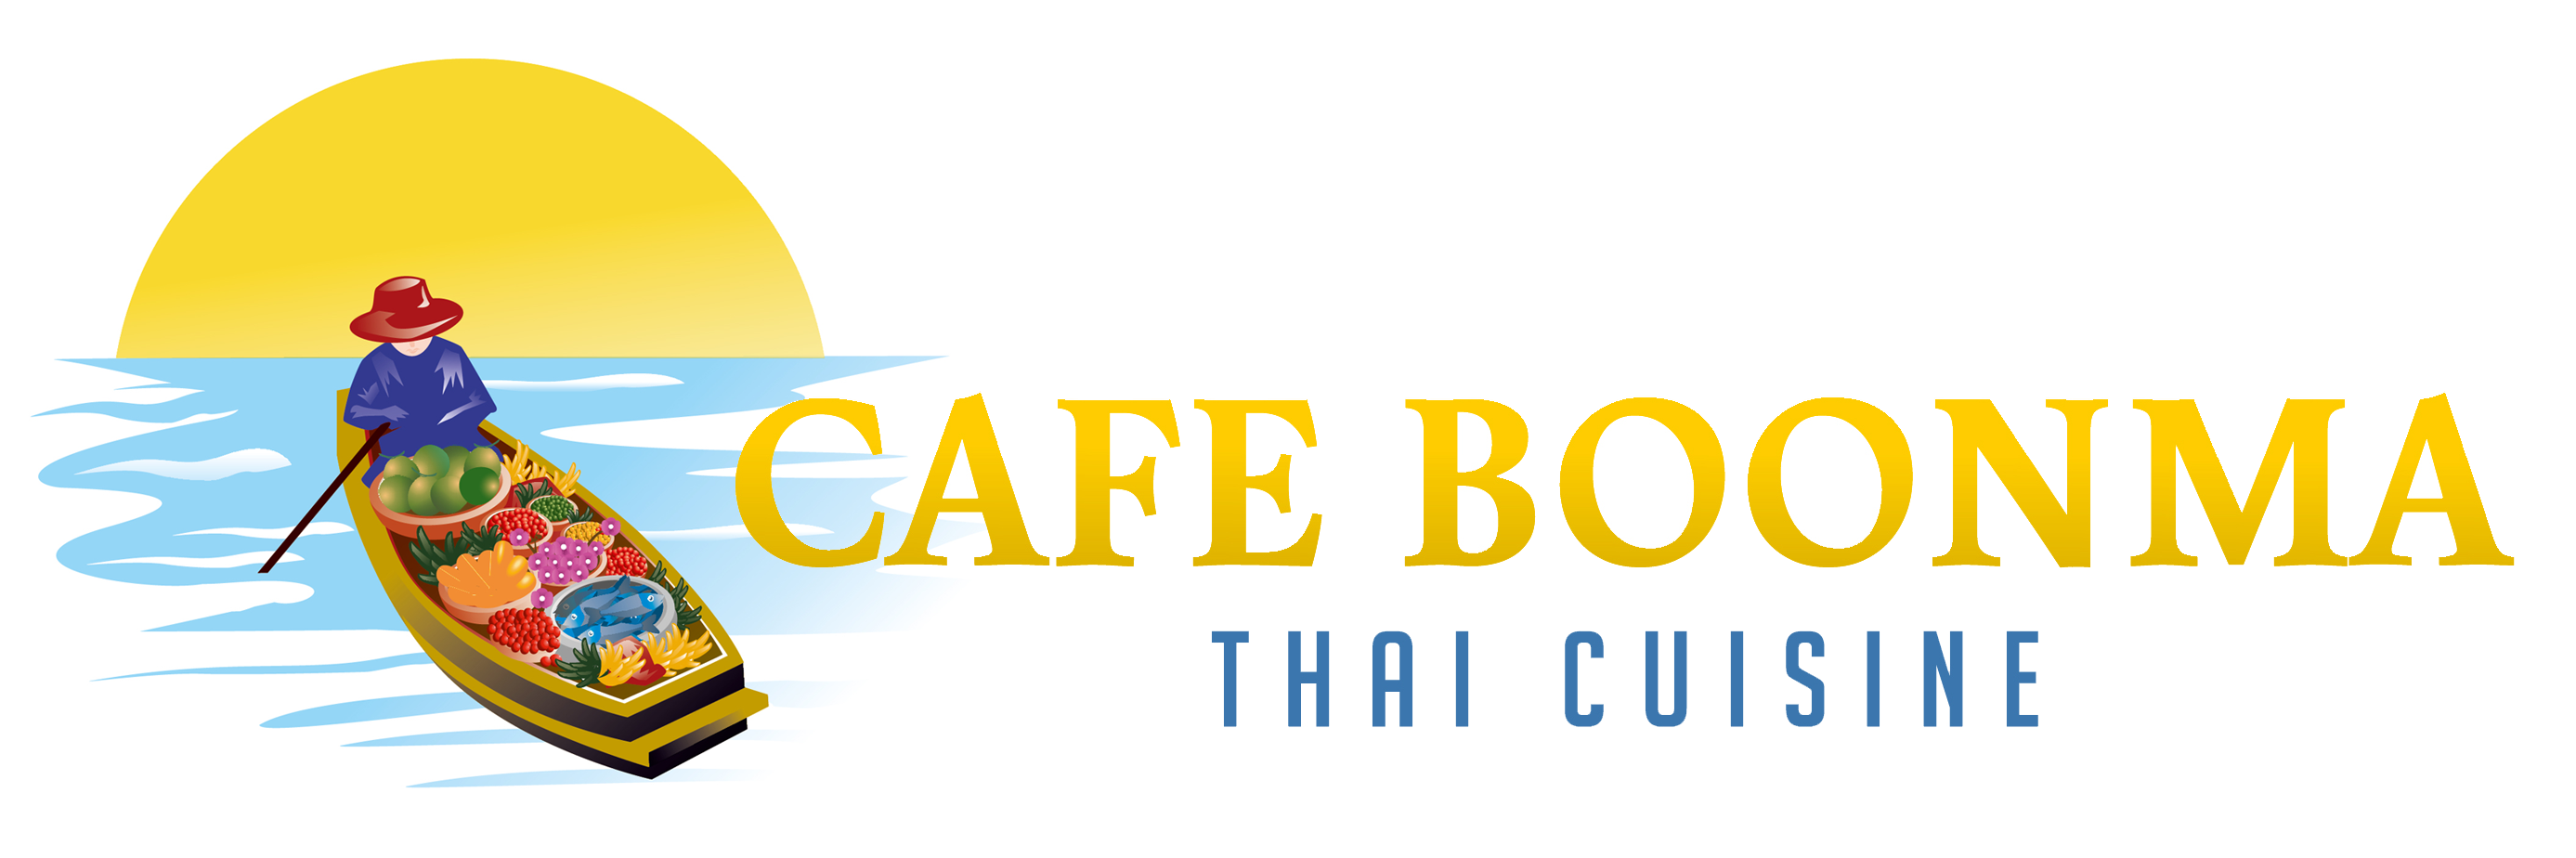 Cafe Boonma